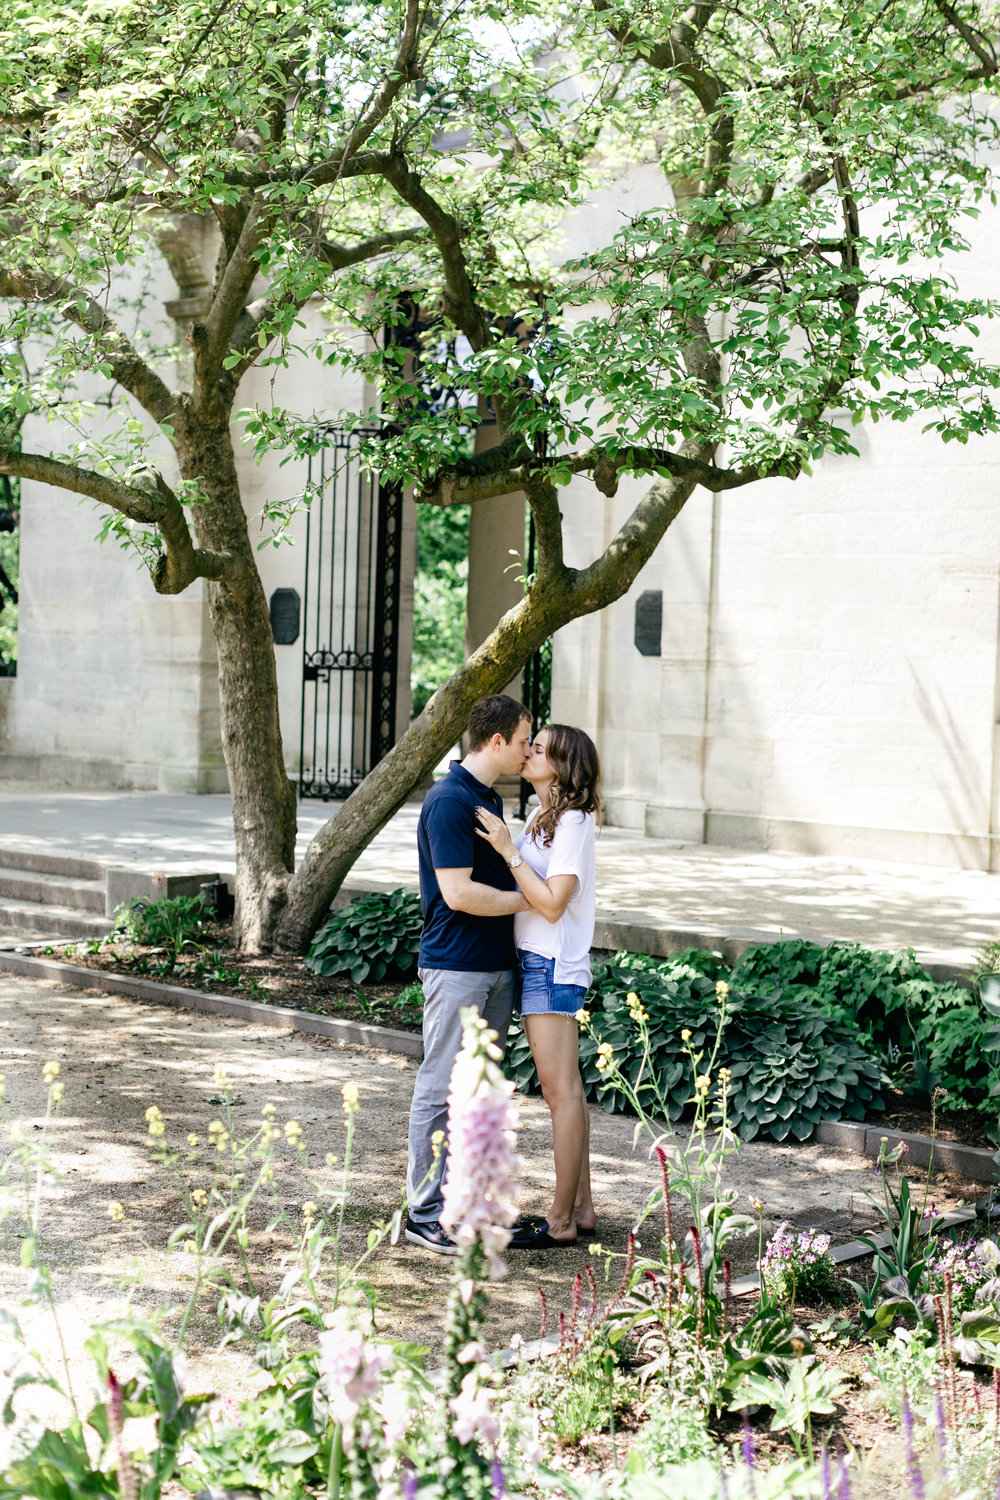 photography-natural-candid-engaged-proposal-philadelphia-wedding-rodin museum-barnes foundation-parkway-modern-lifestyle-08.JPG